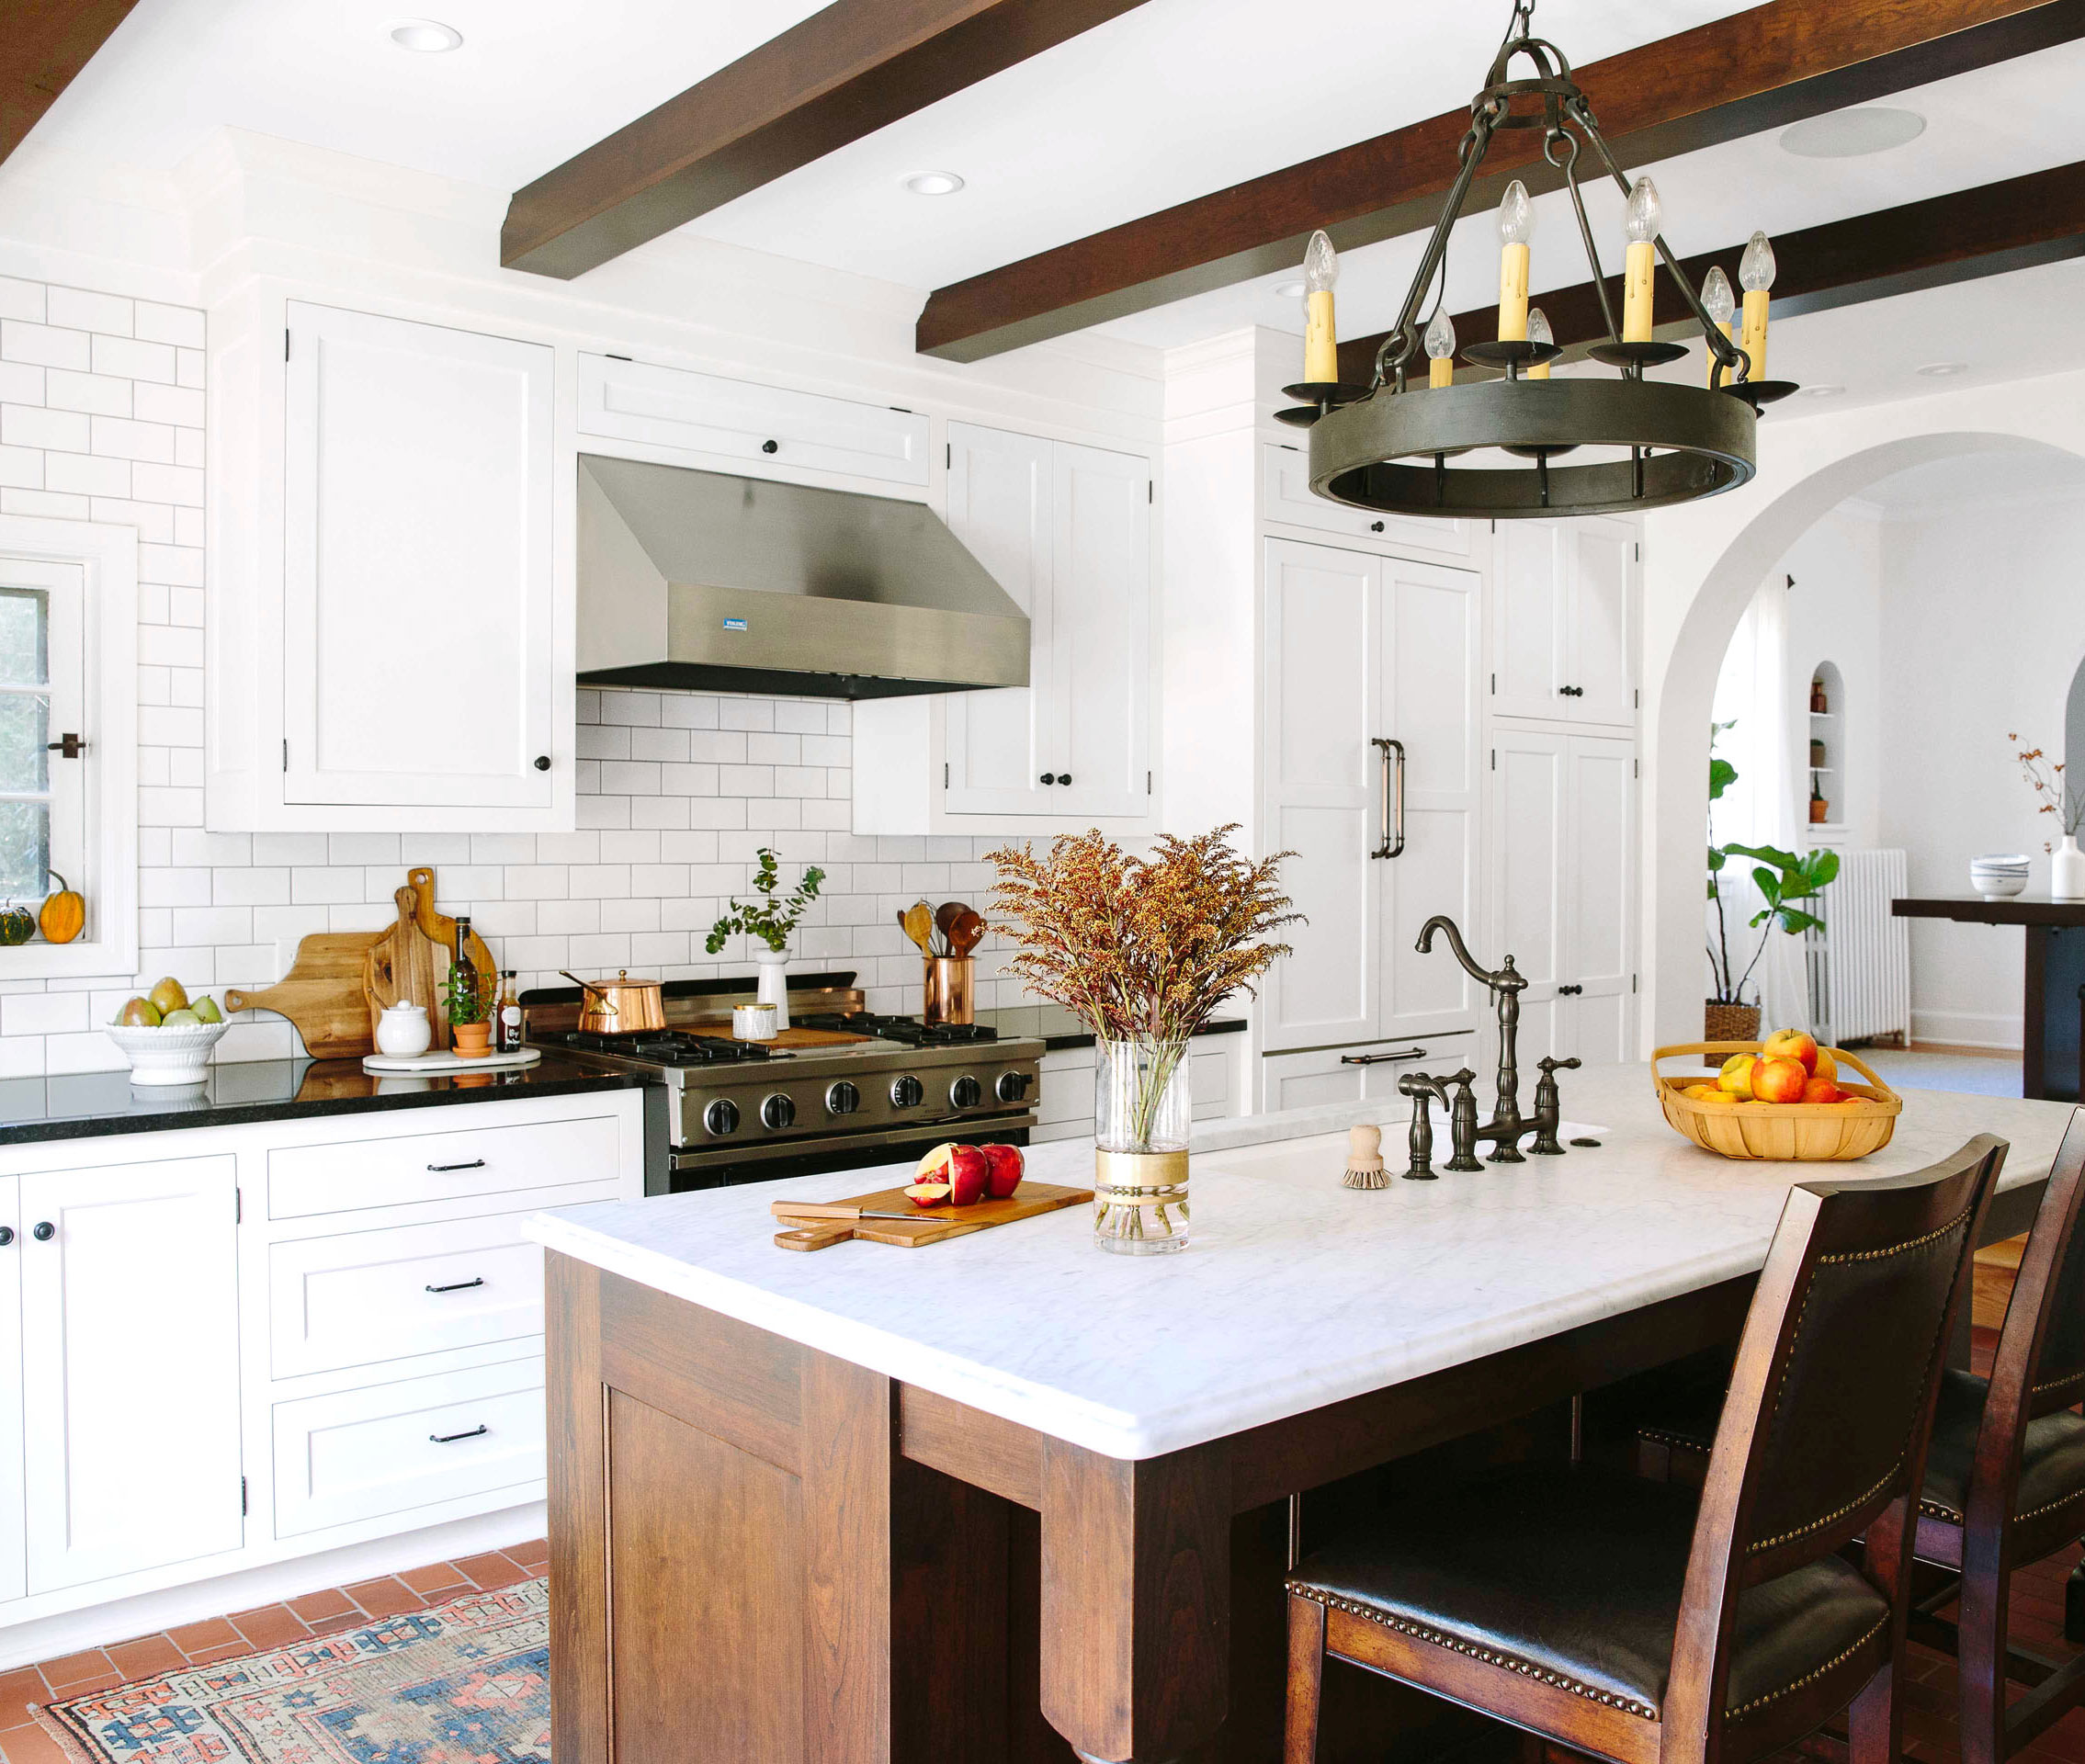 Kitchens for Every Style | Midwest Living